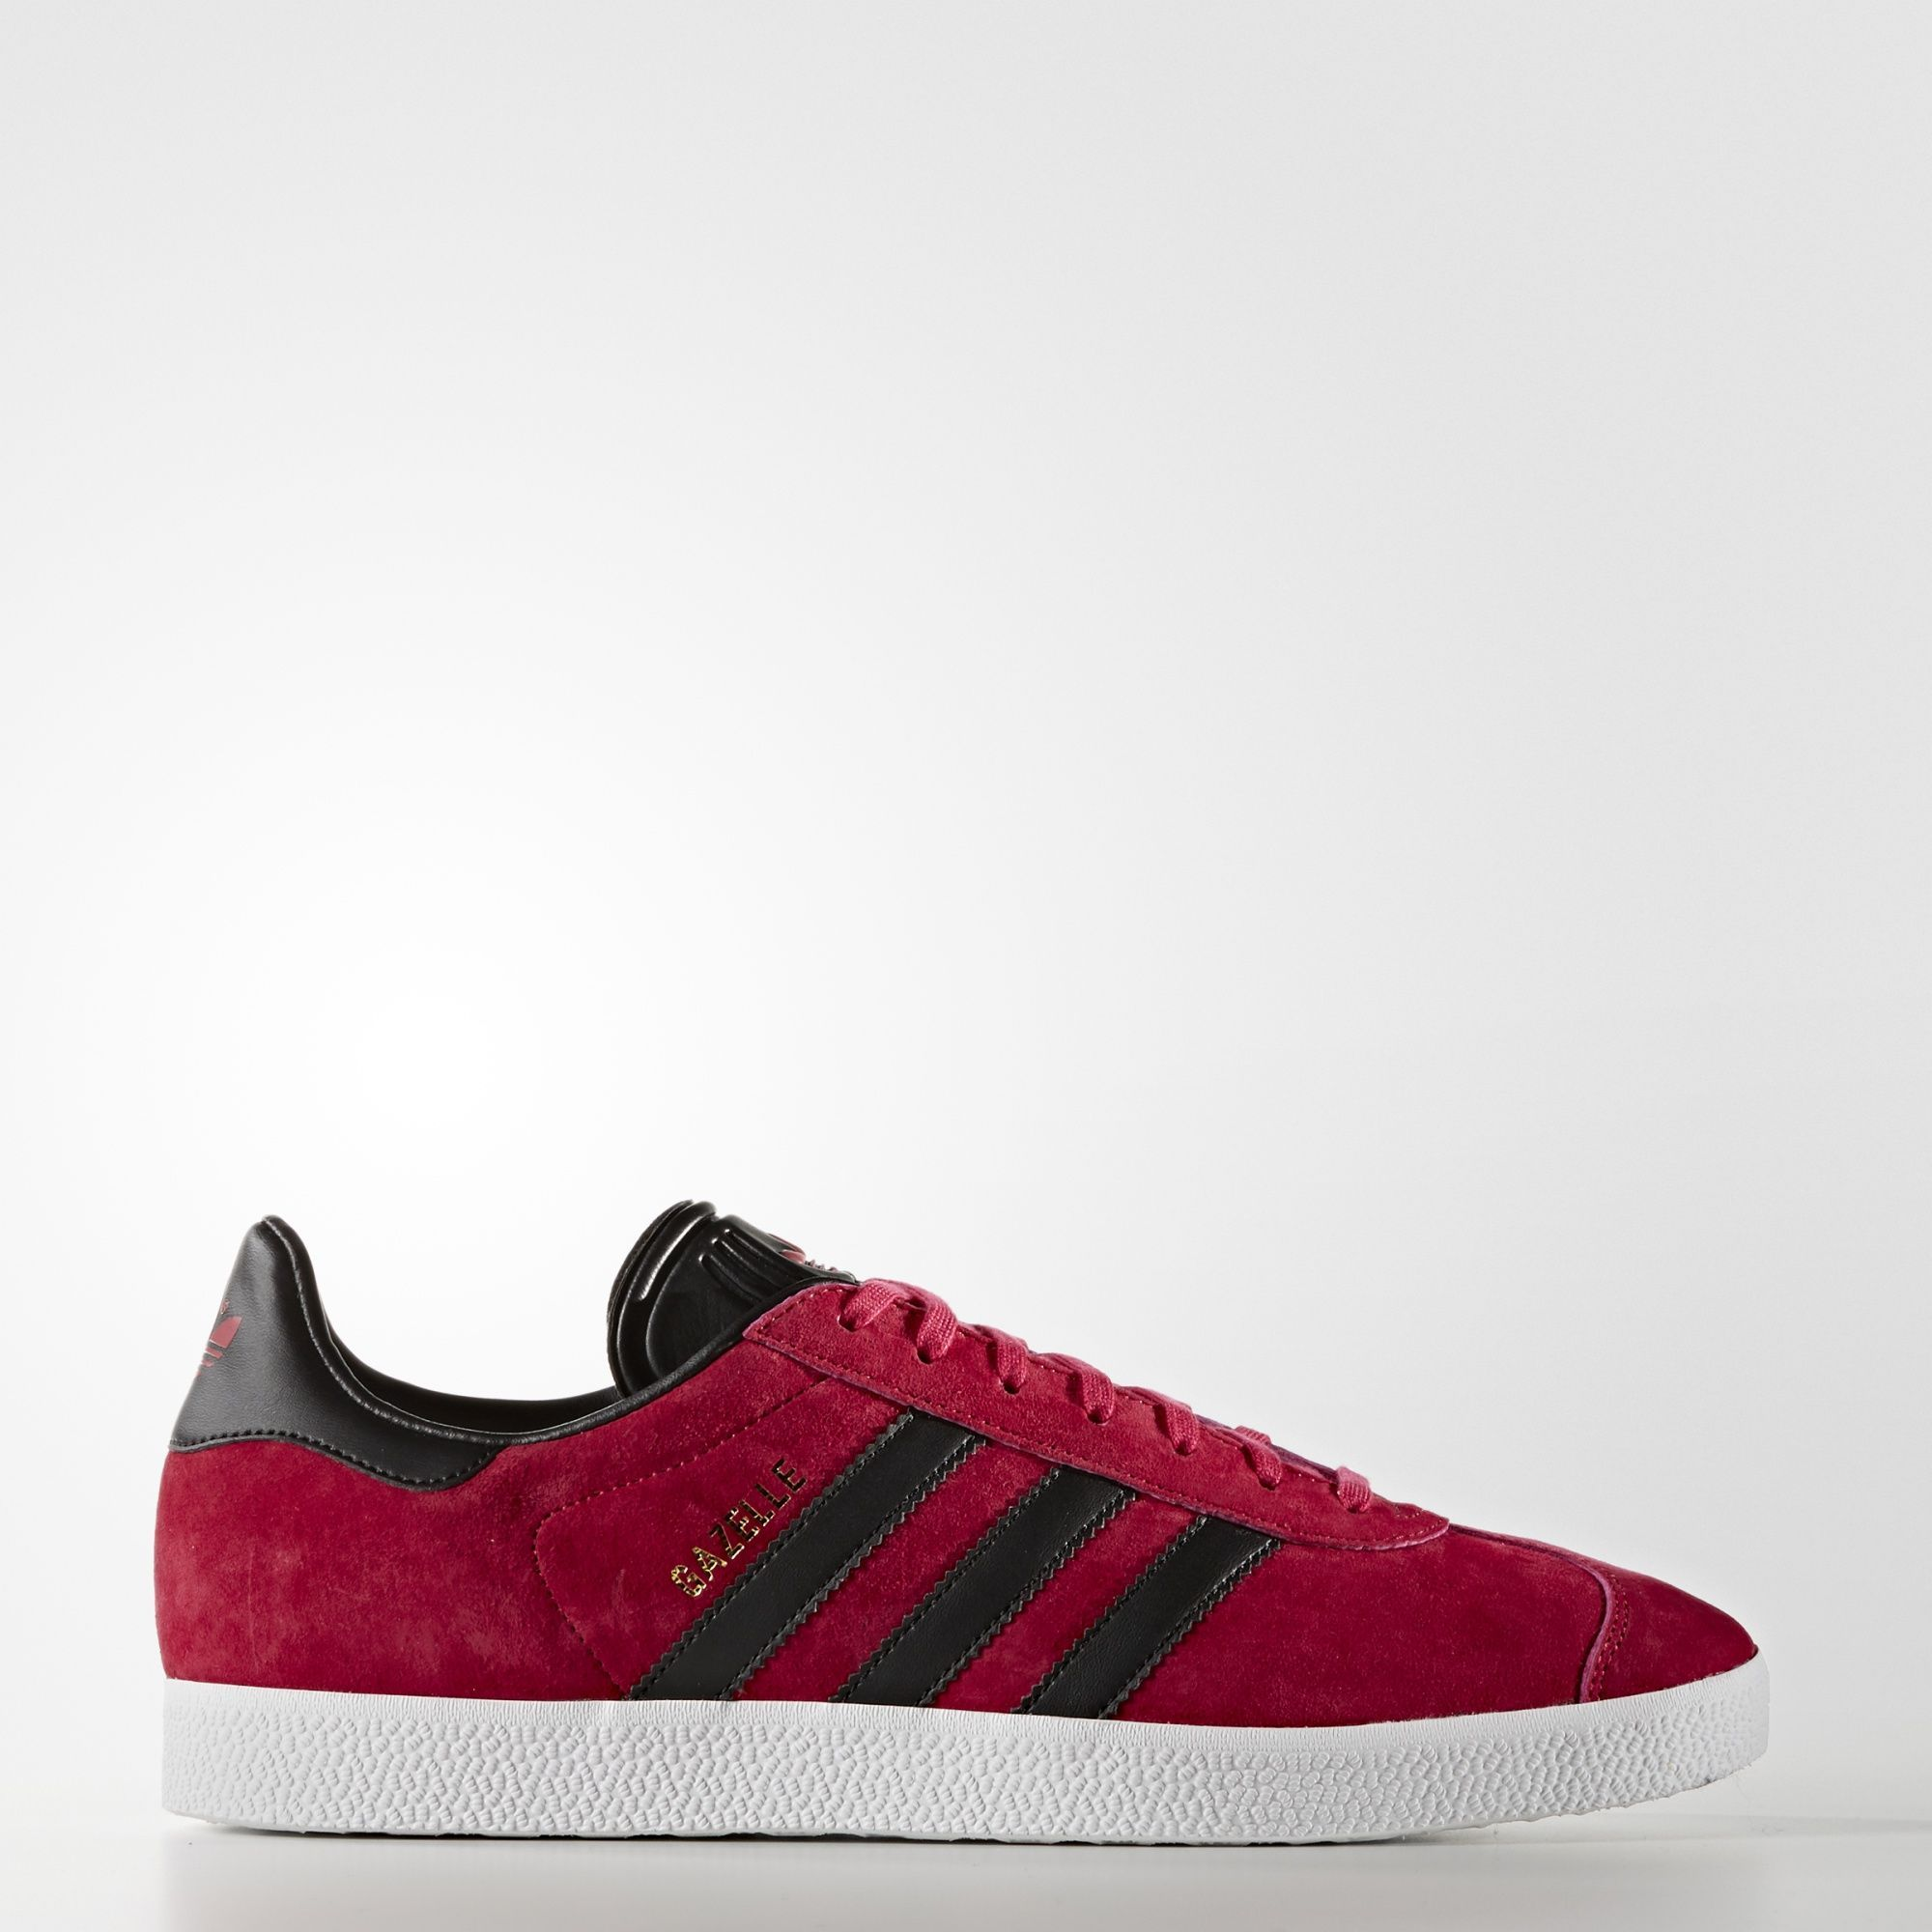 79ba3d2ca51d adidas gazelle red black Sale